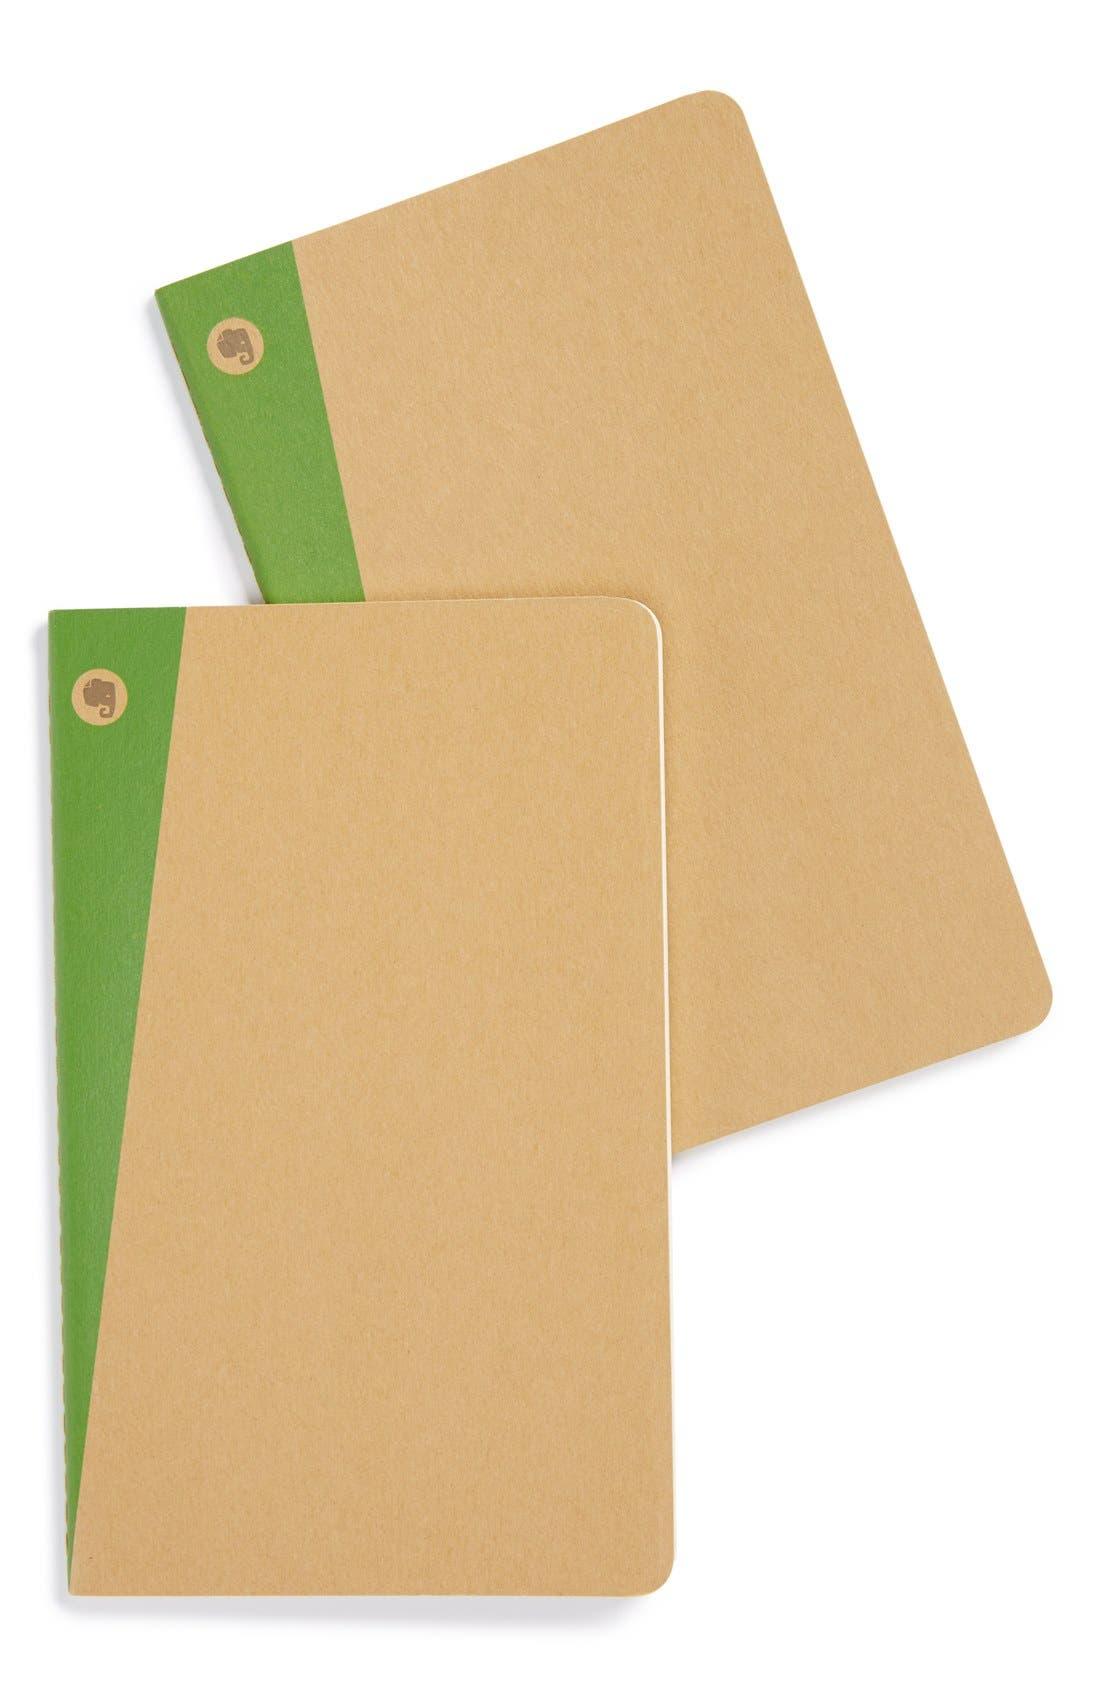 Main Image - Moleskine 'Ruled - Large' Evernote Edition Soft Cover Notebook (2-Pack)